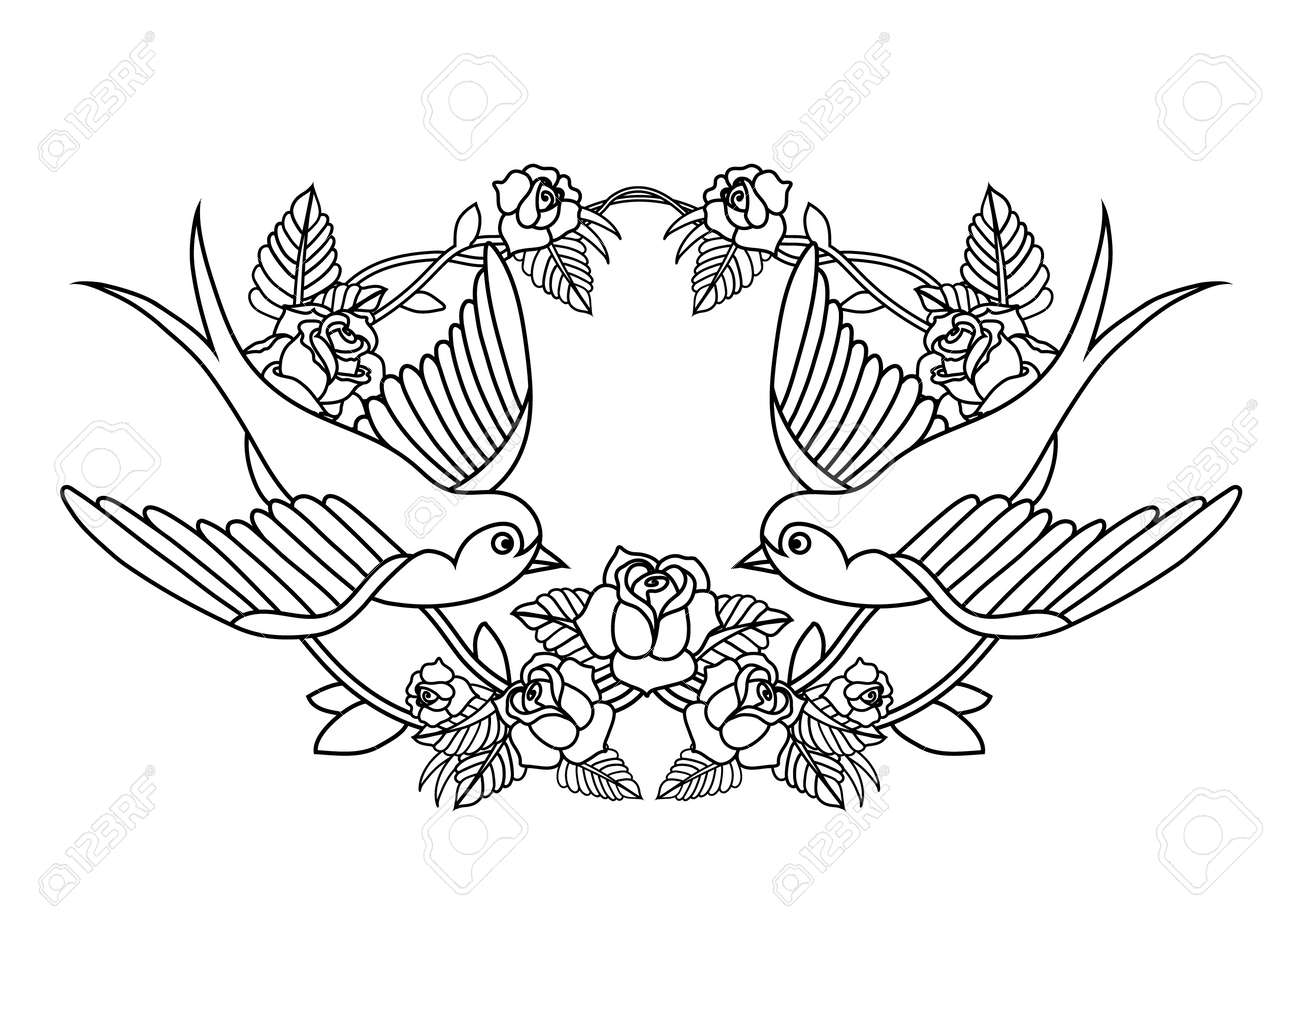 Old school frame with roses and birds - 31646088